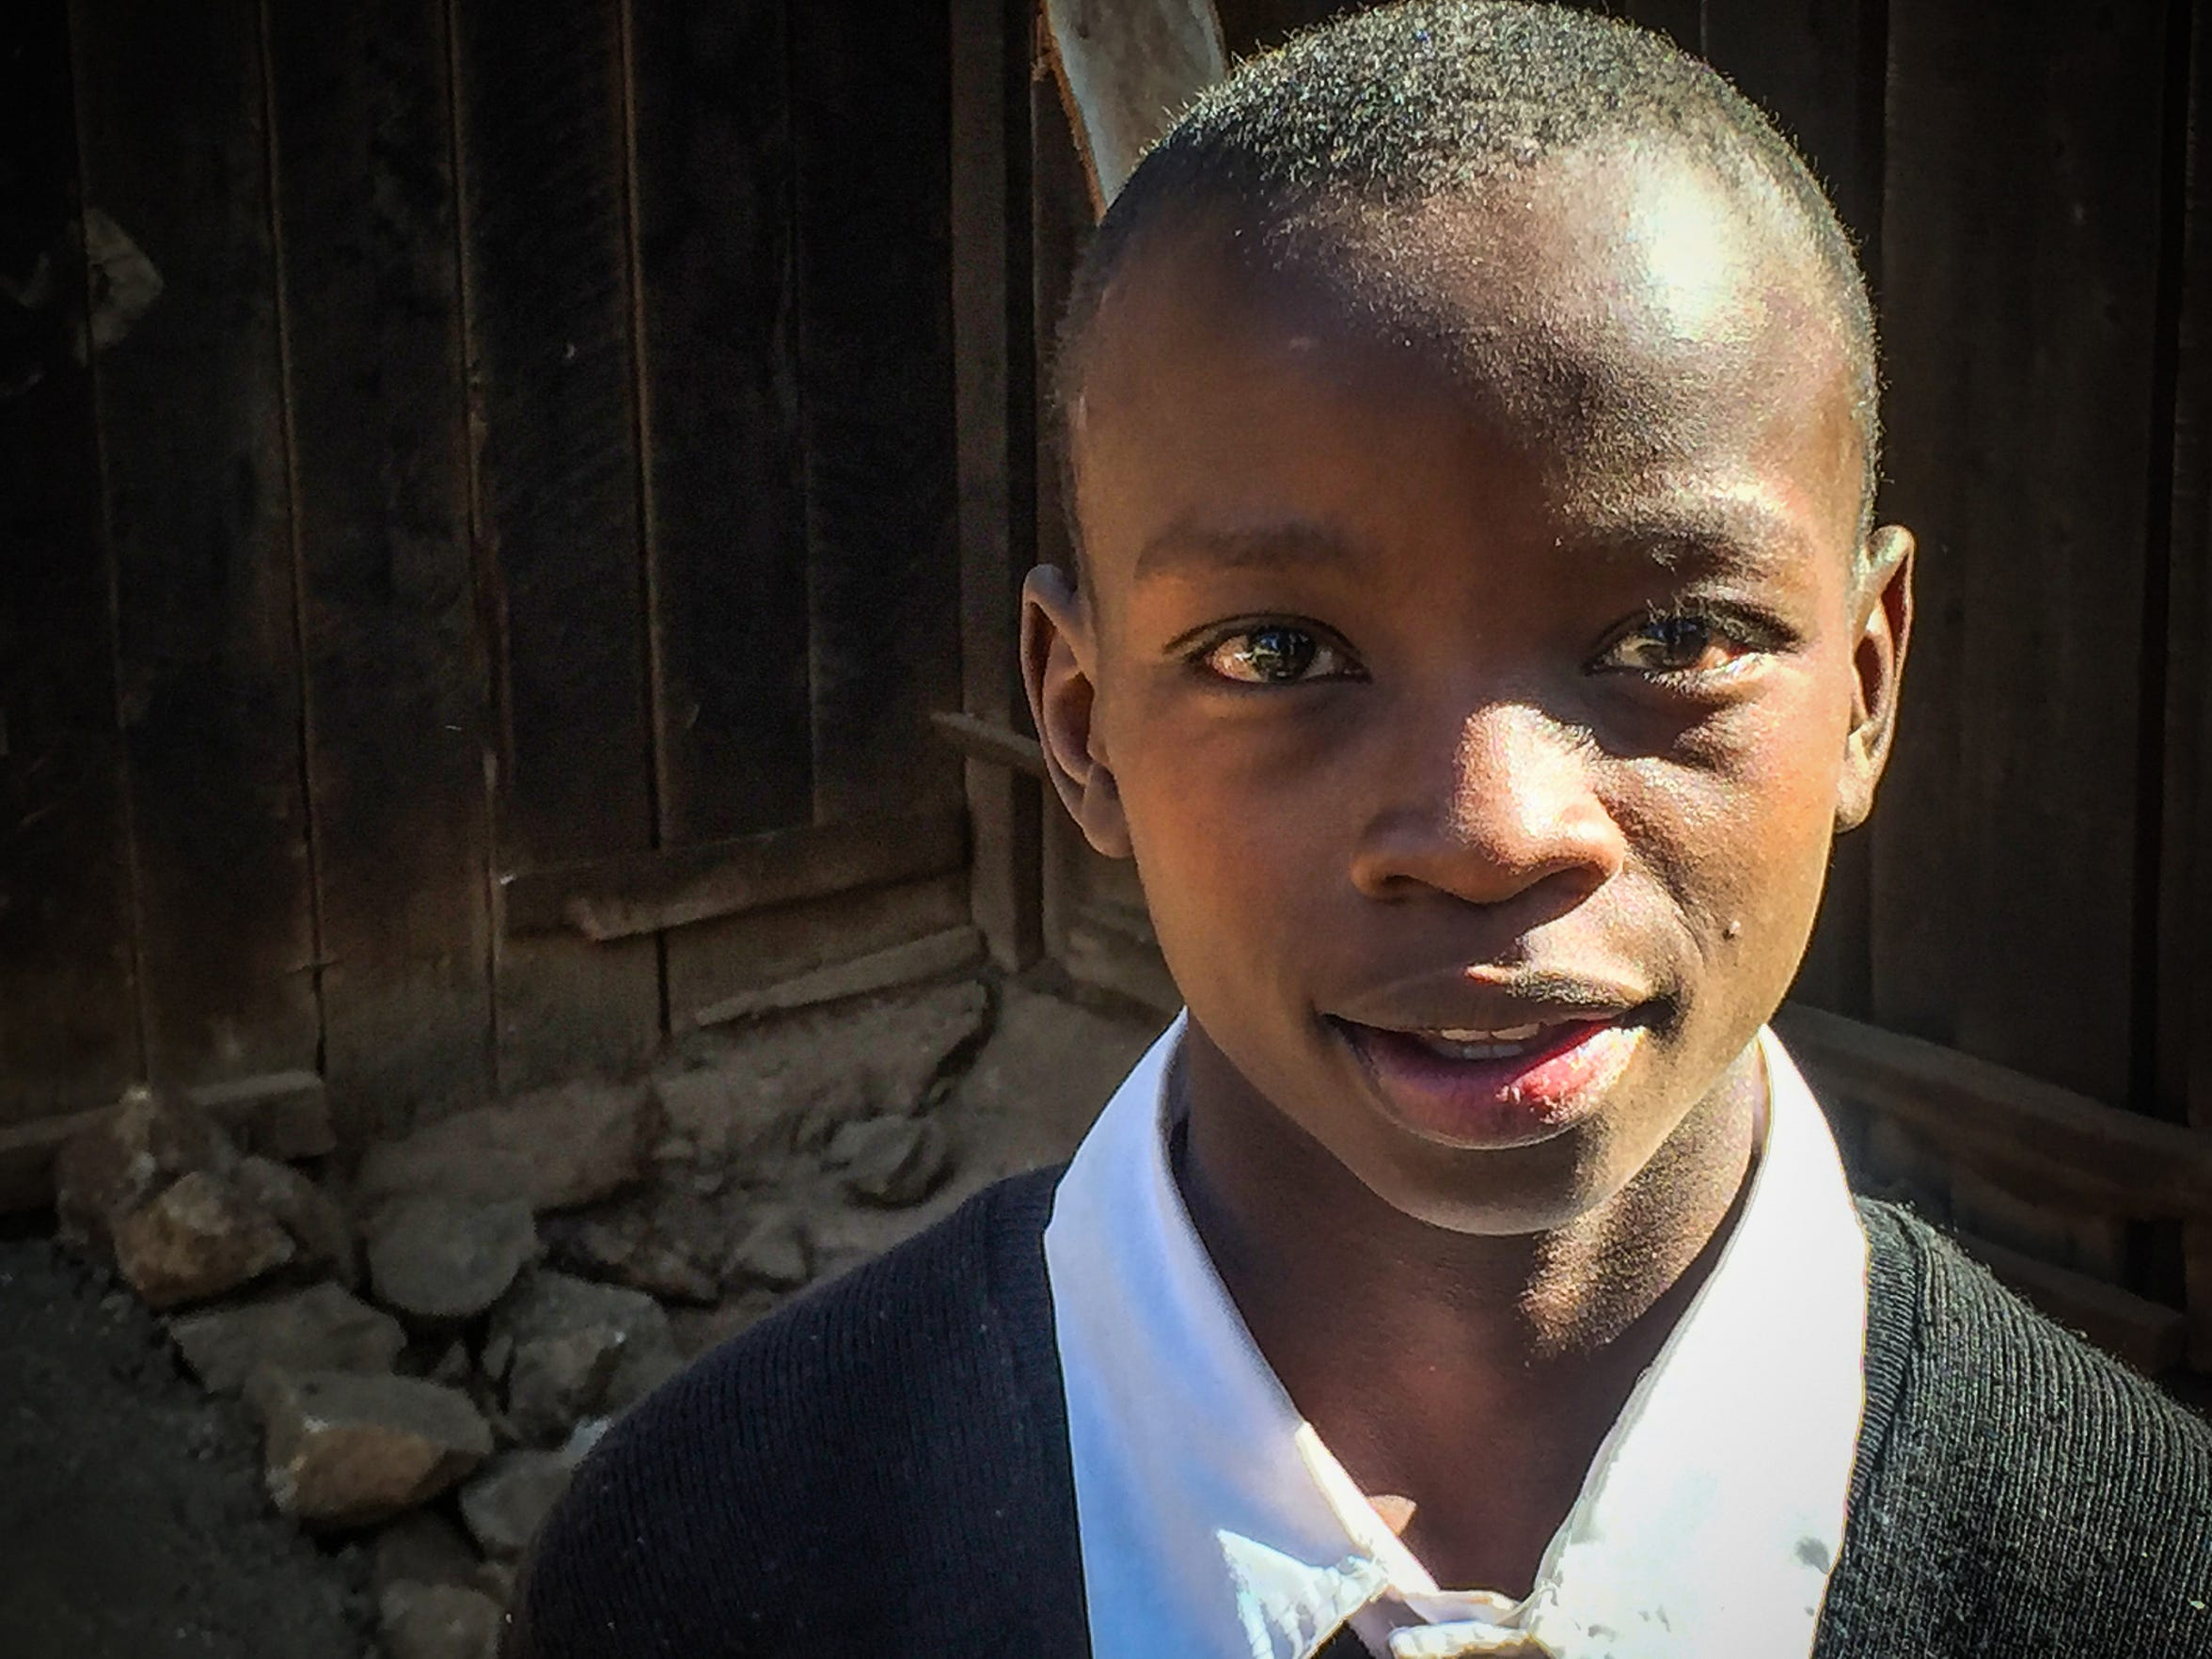 A Kenyan boy lives with his brother at a shelter for at-risk children near Nyahururu.